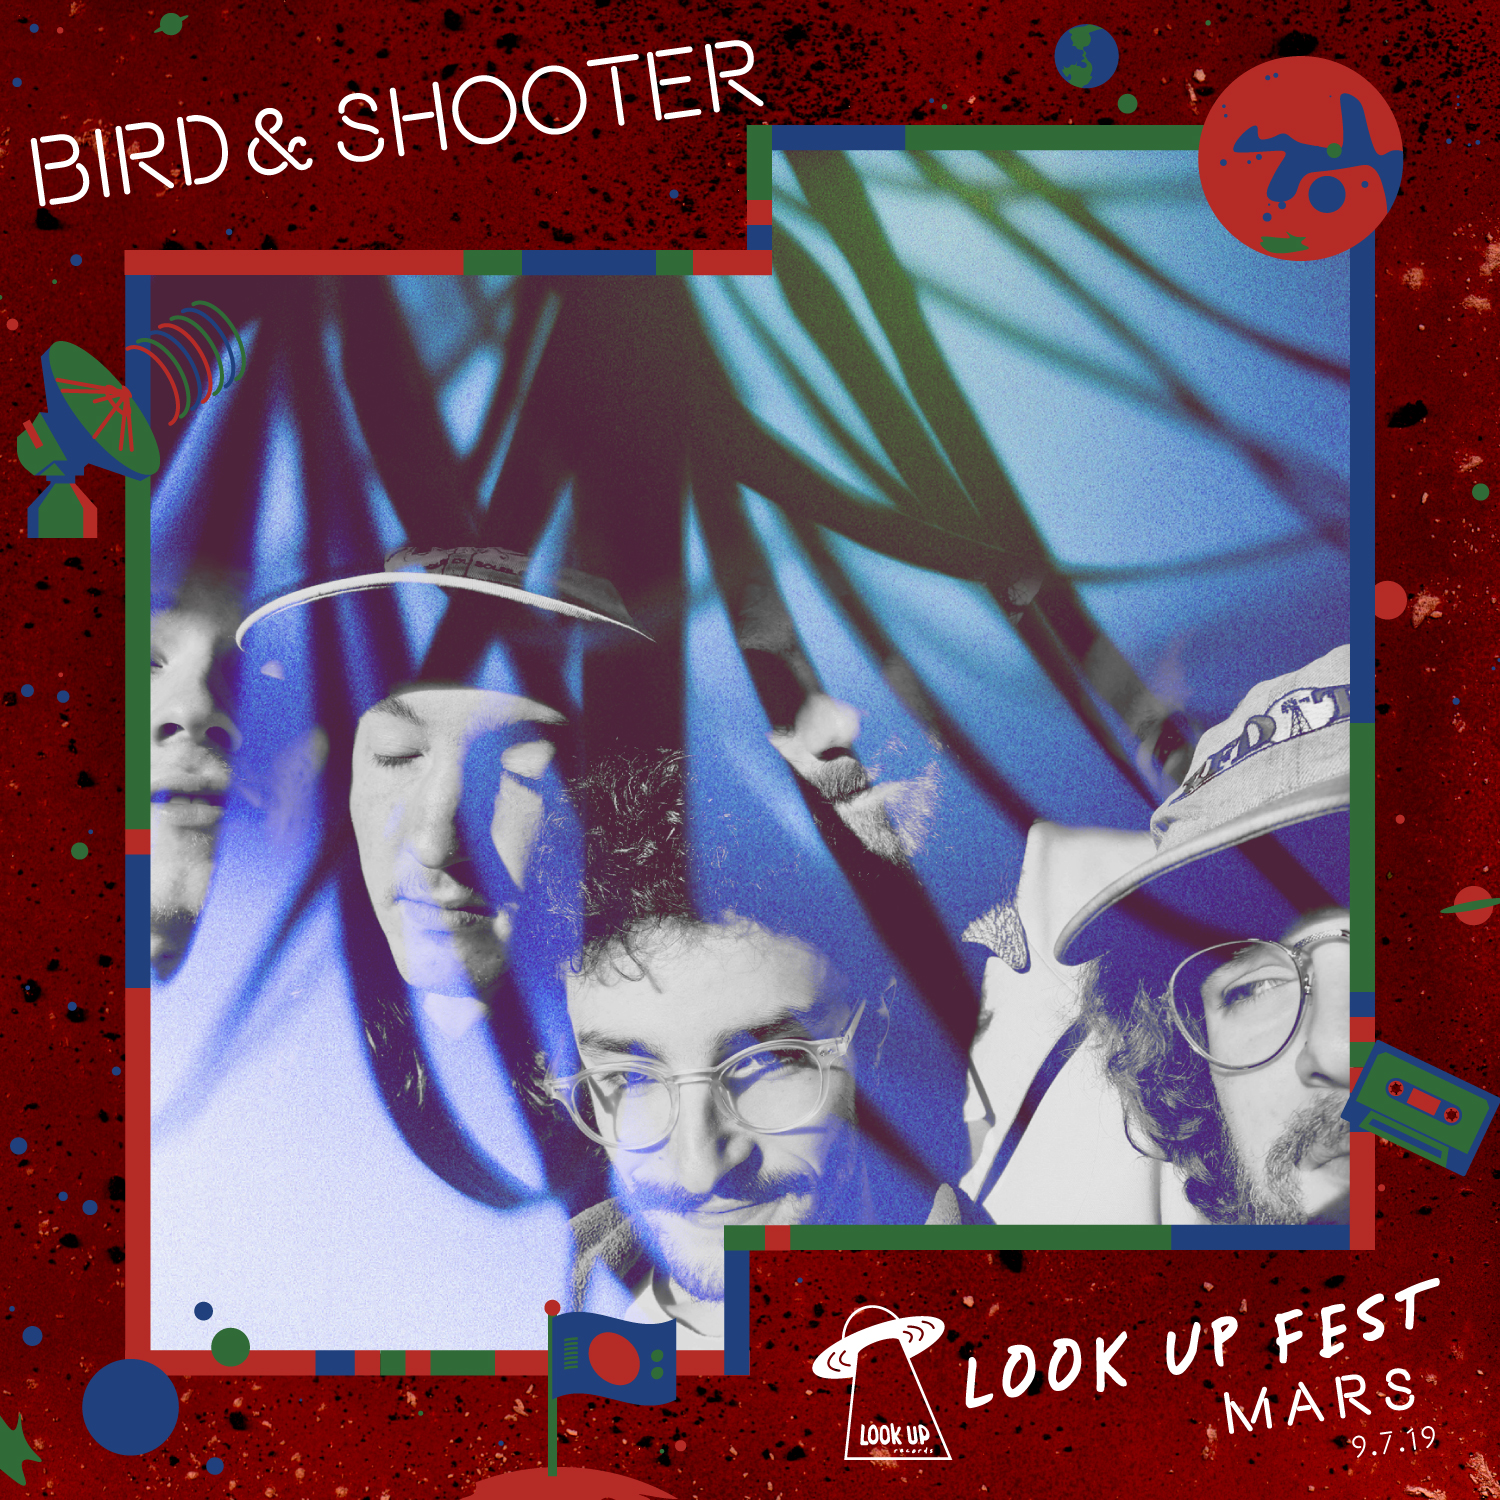 BIRD & SHOOTER - Bird & Shooter are a brand new 6 piece psych-pop band from Bellingham, WA. Their first single